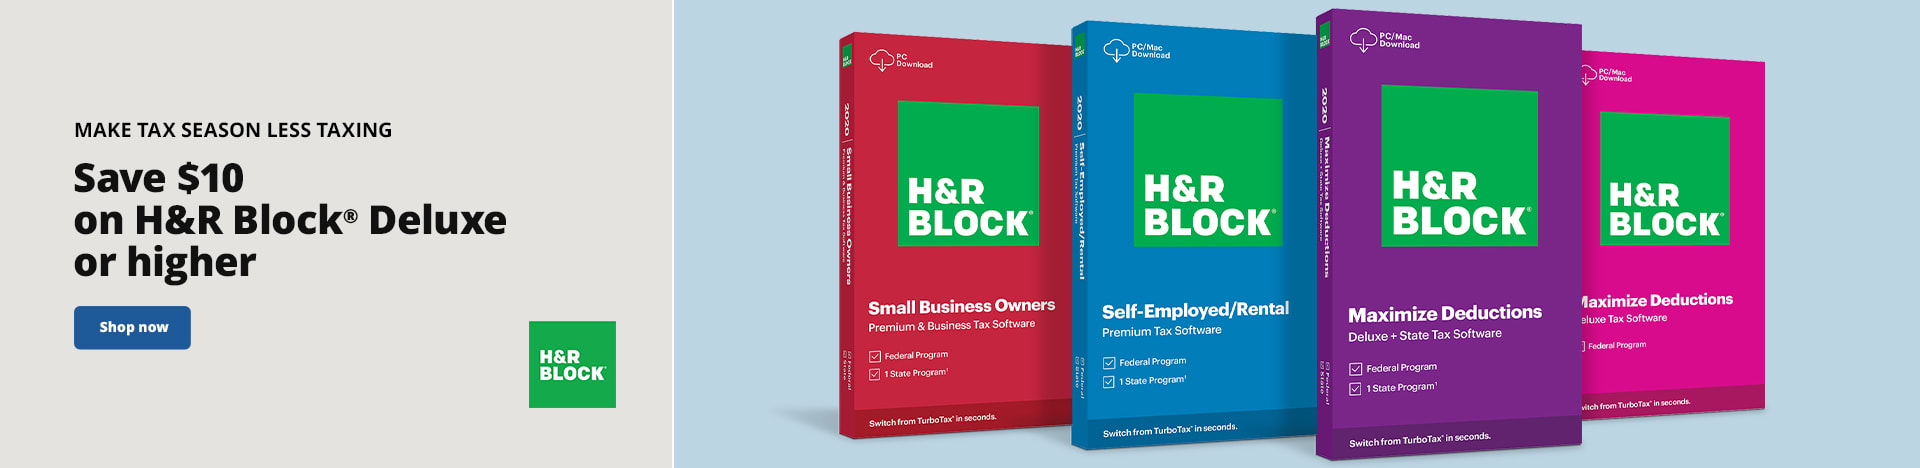 Make Tax Season Less Taxing. Save $10 on H&R Block® Deluxe or higher